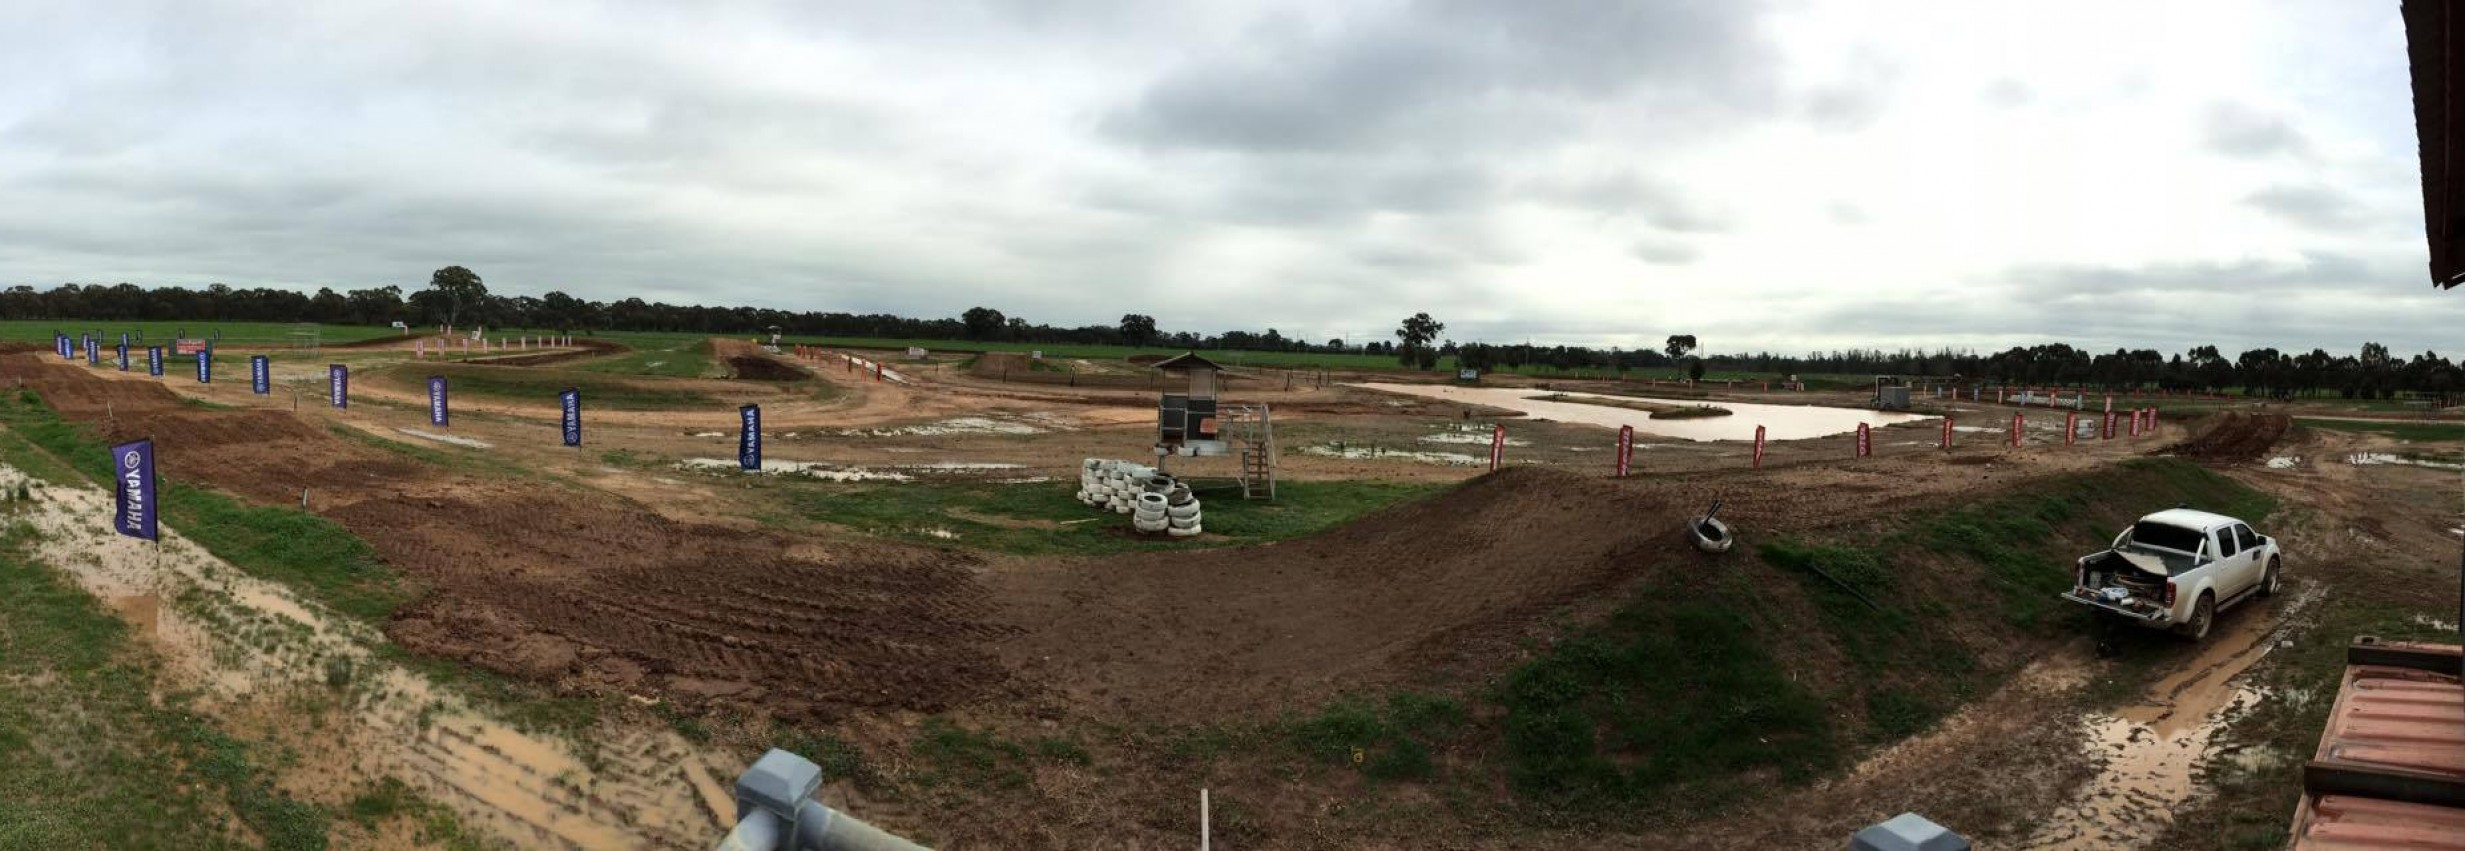 Mooroopna Motocross Track – Goulburn Valley Junior Motorcycle Club